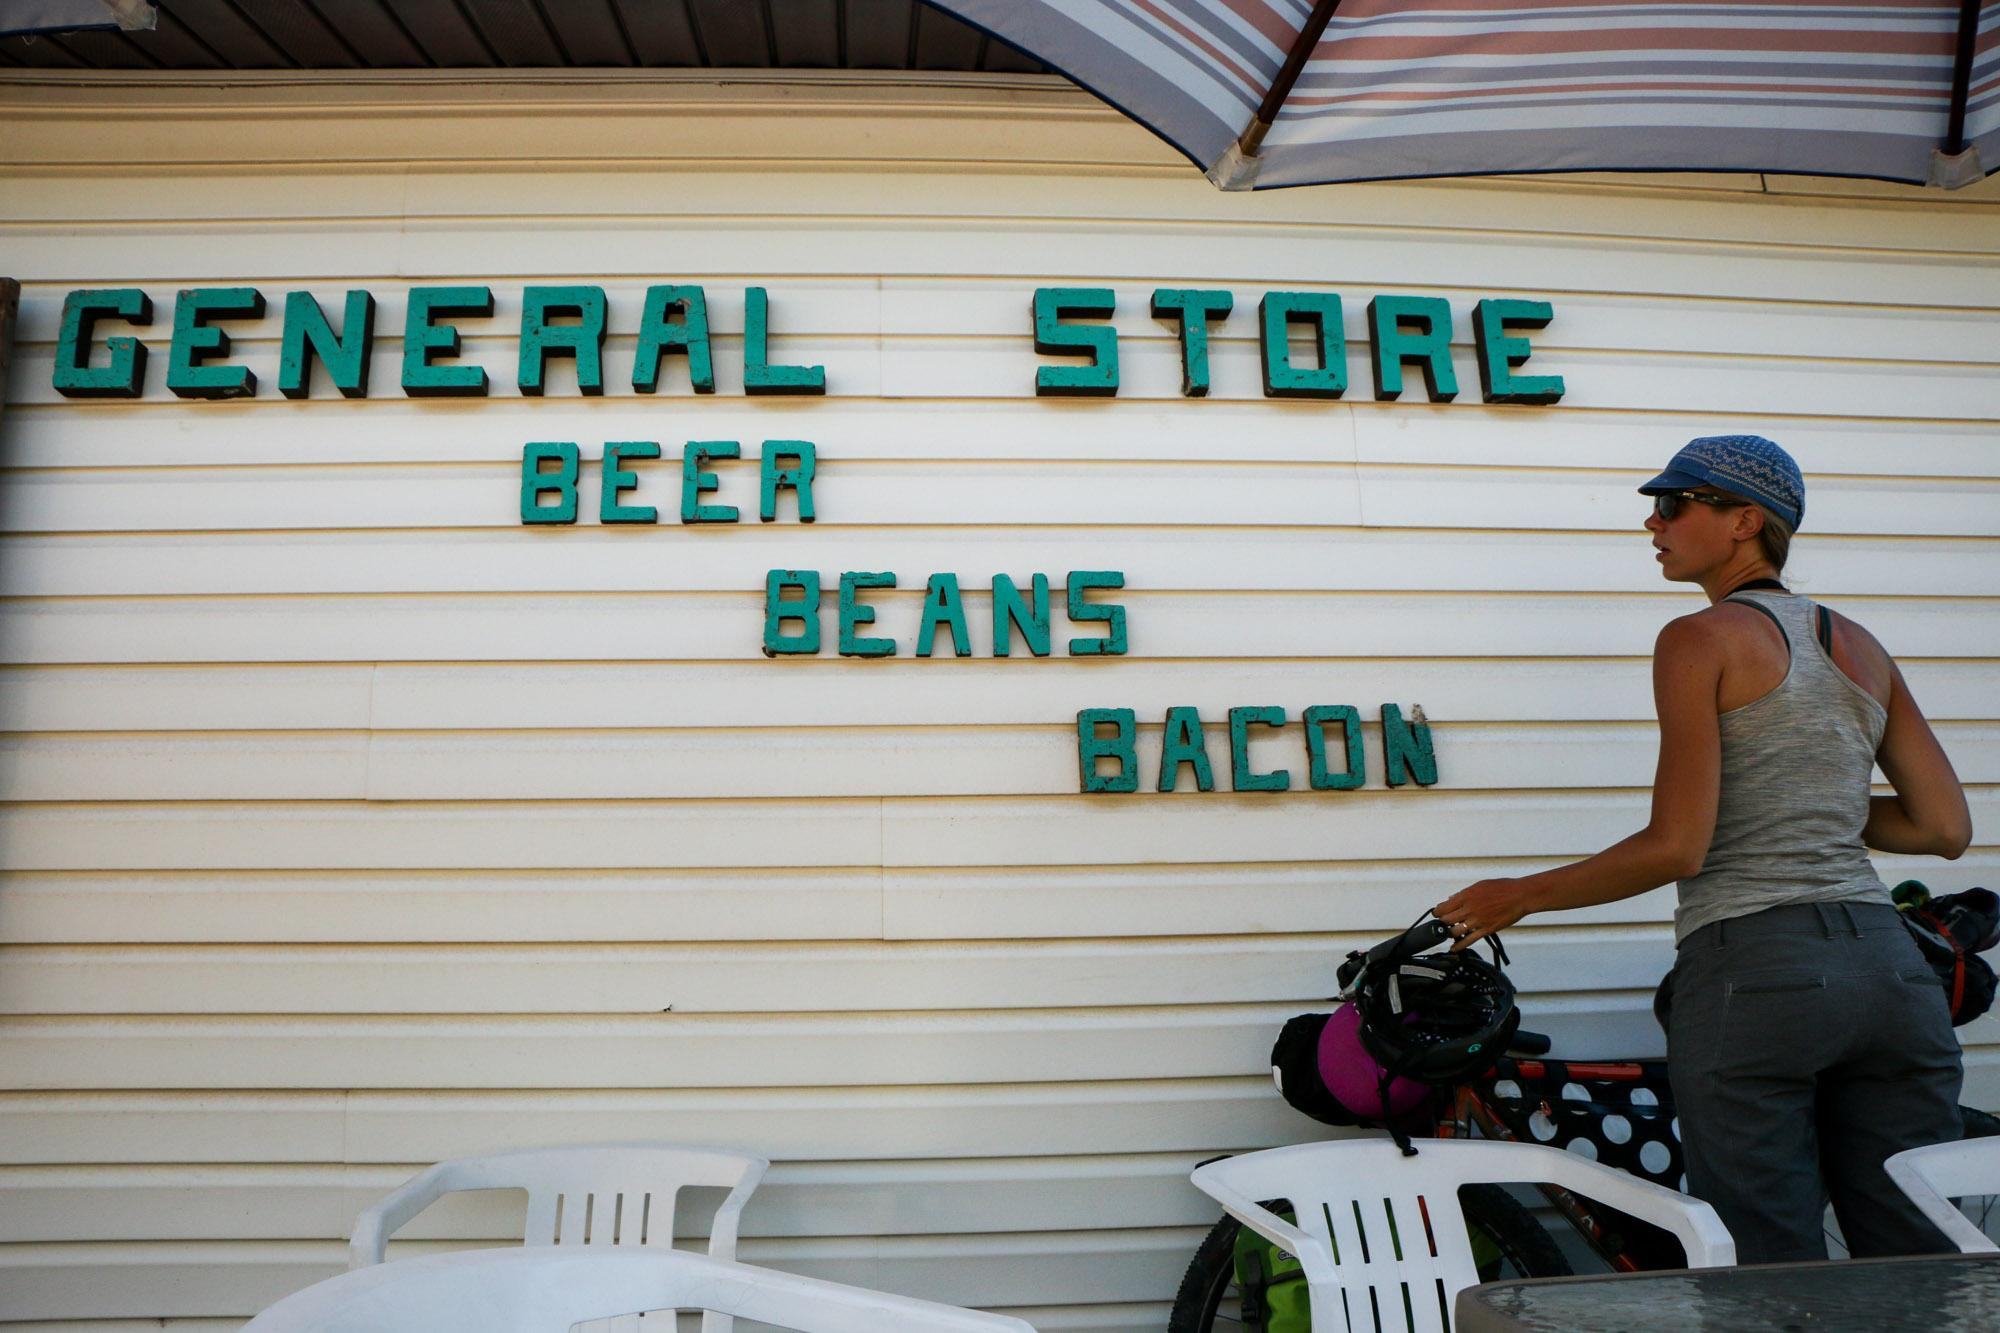 These great little stores were a regular thing in rural Montana,